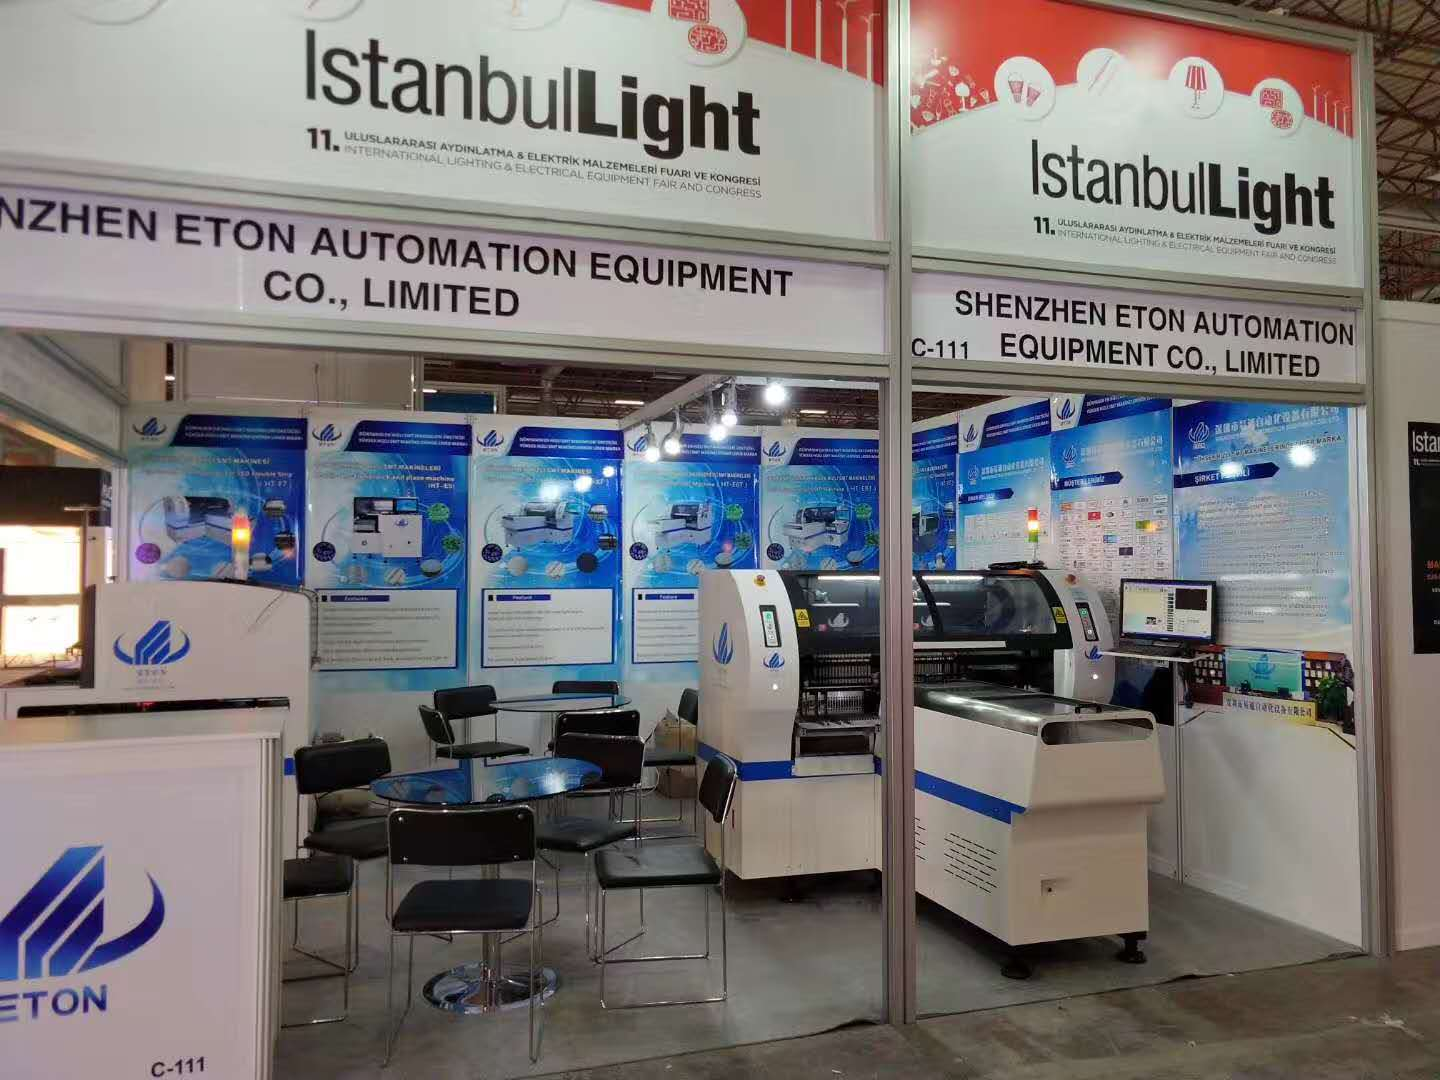 The 2018 Turkish International Brand Lighting Exhibition